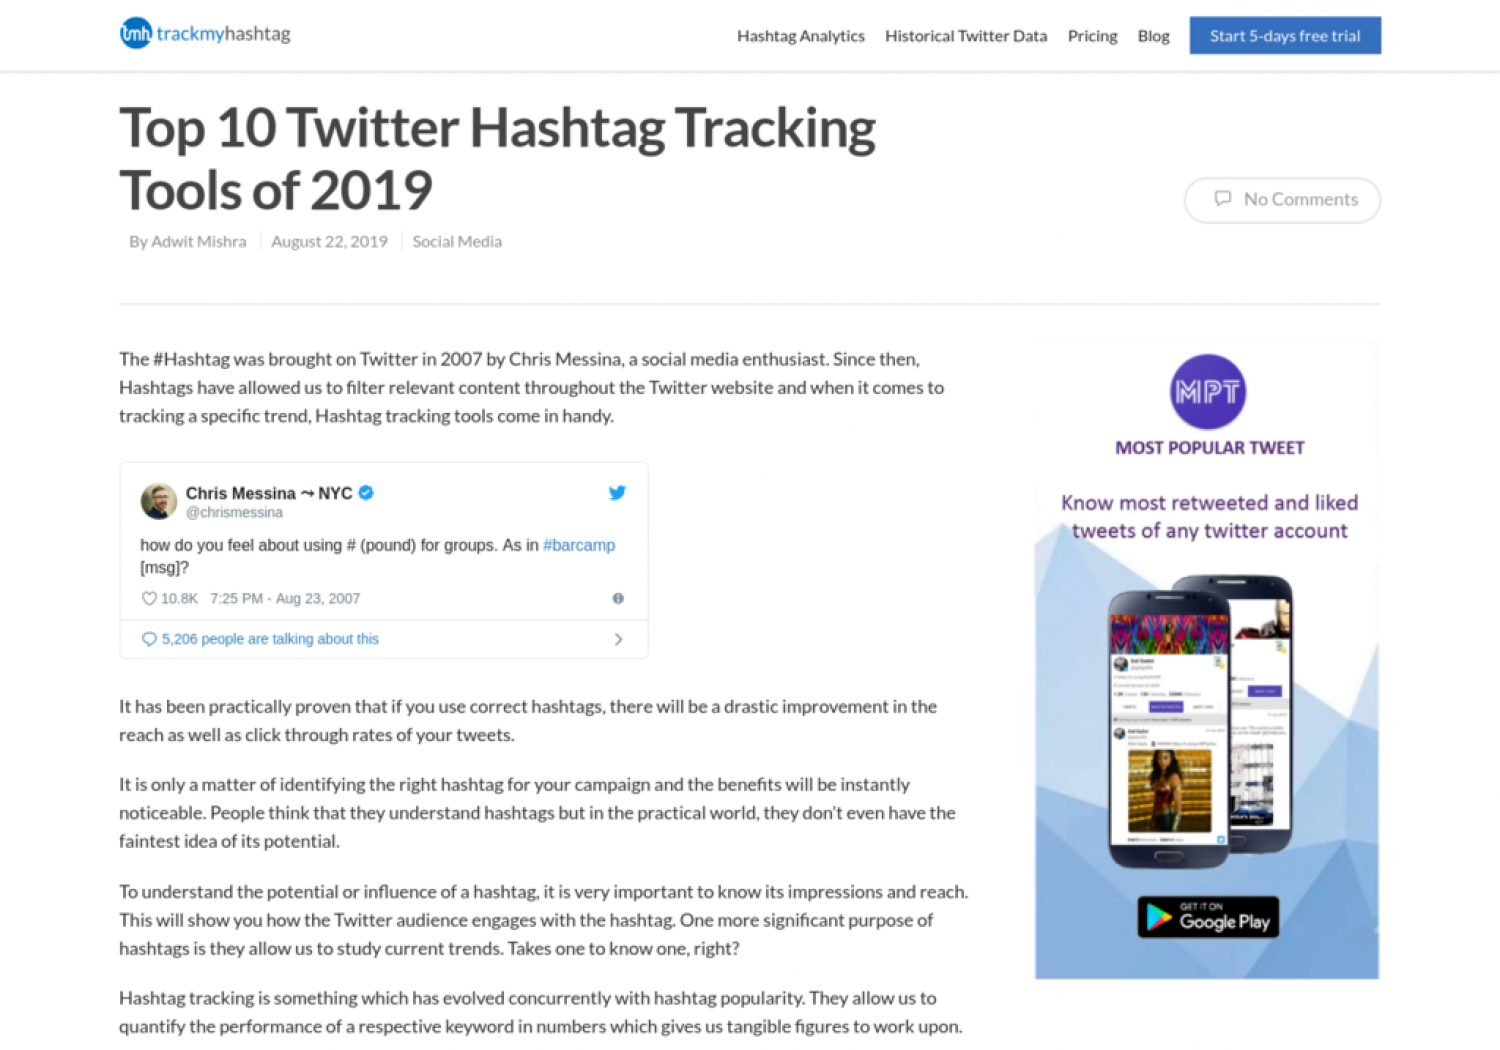 Top 10 Twitter Hashtag Tracking Tools of 2019 Infographic